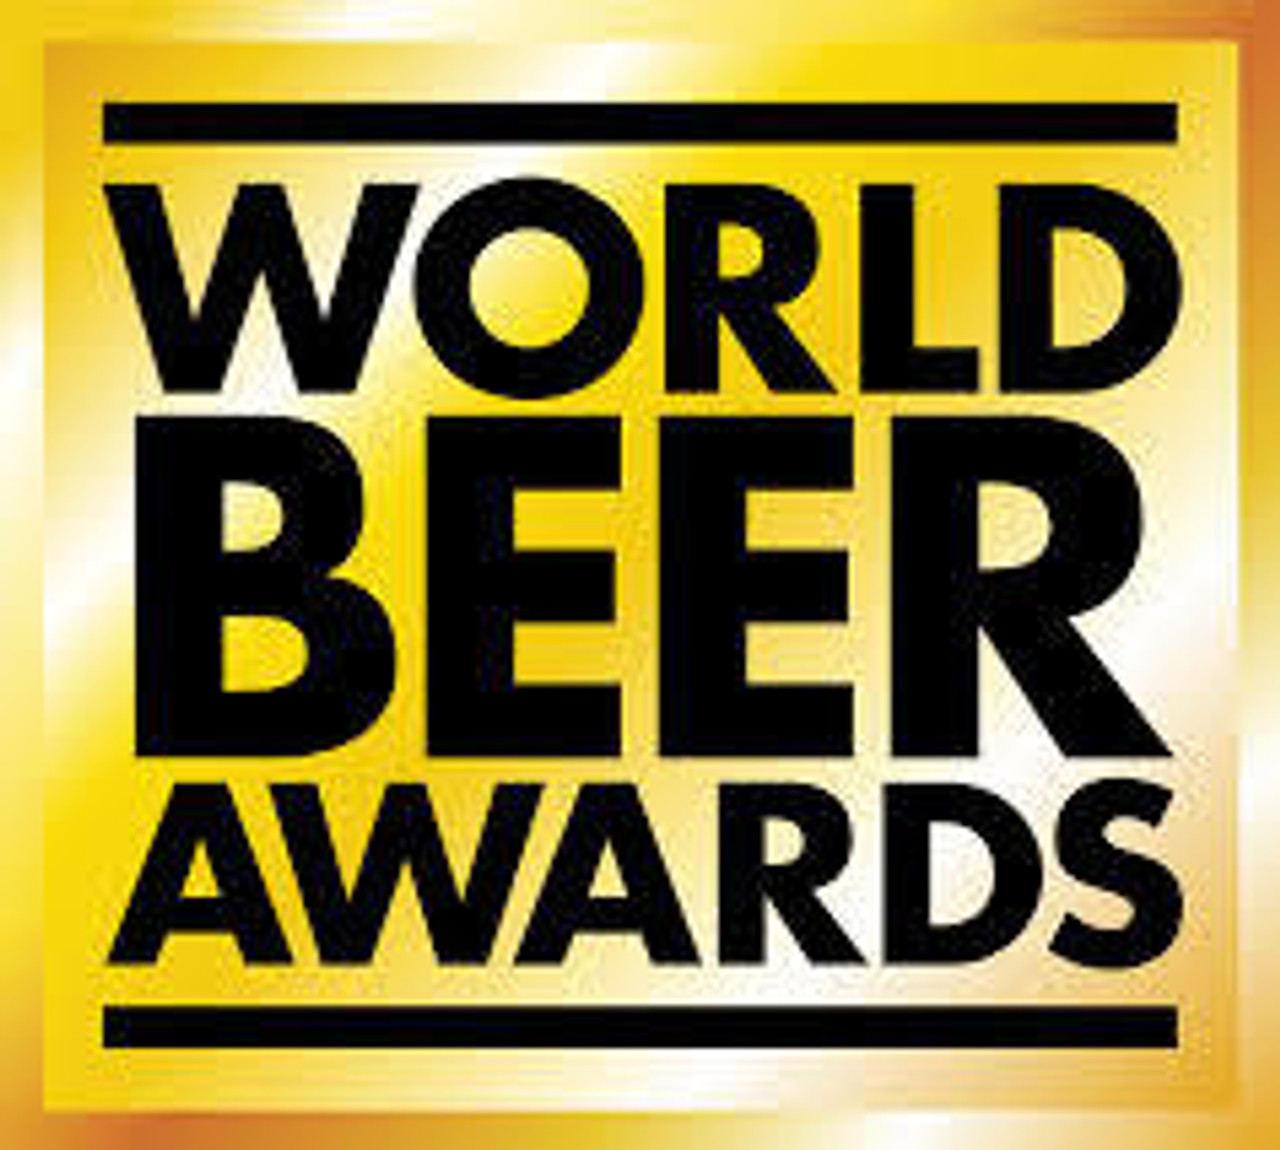 Awards beer